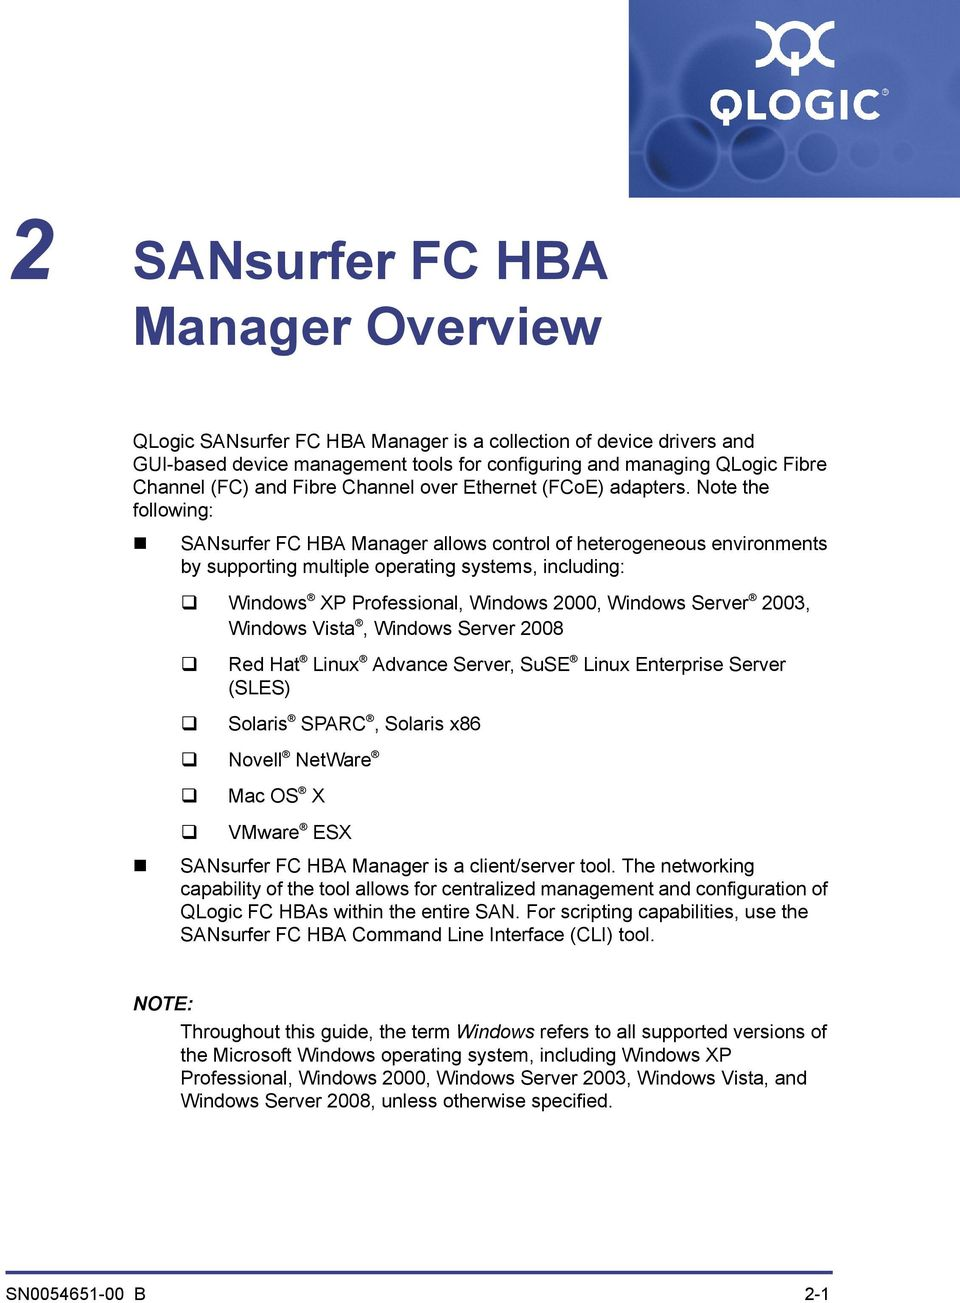 Note the following: ANsurfer FC HBA Manager allows control of heterogeneous environments by supporting multiple operating systems, including: Windows XP Professional, Windows 2000, Windows erver